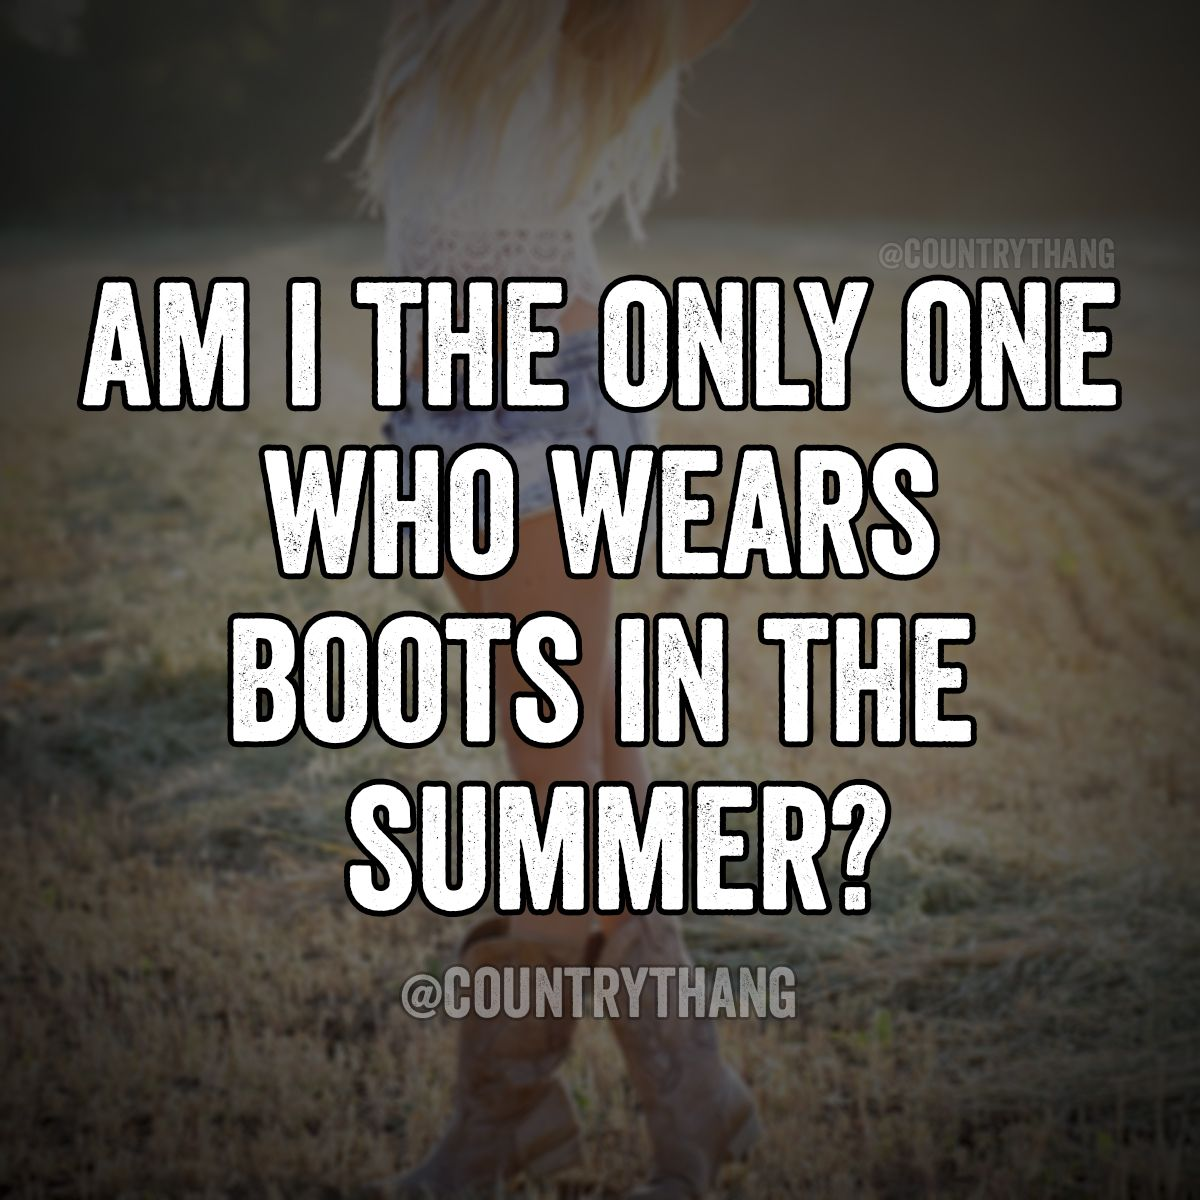 Am I the only one who wears boots in the summer.?